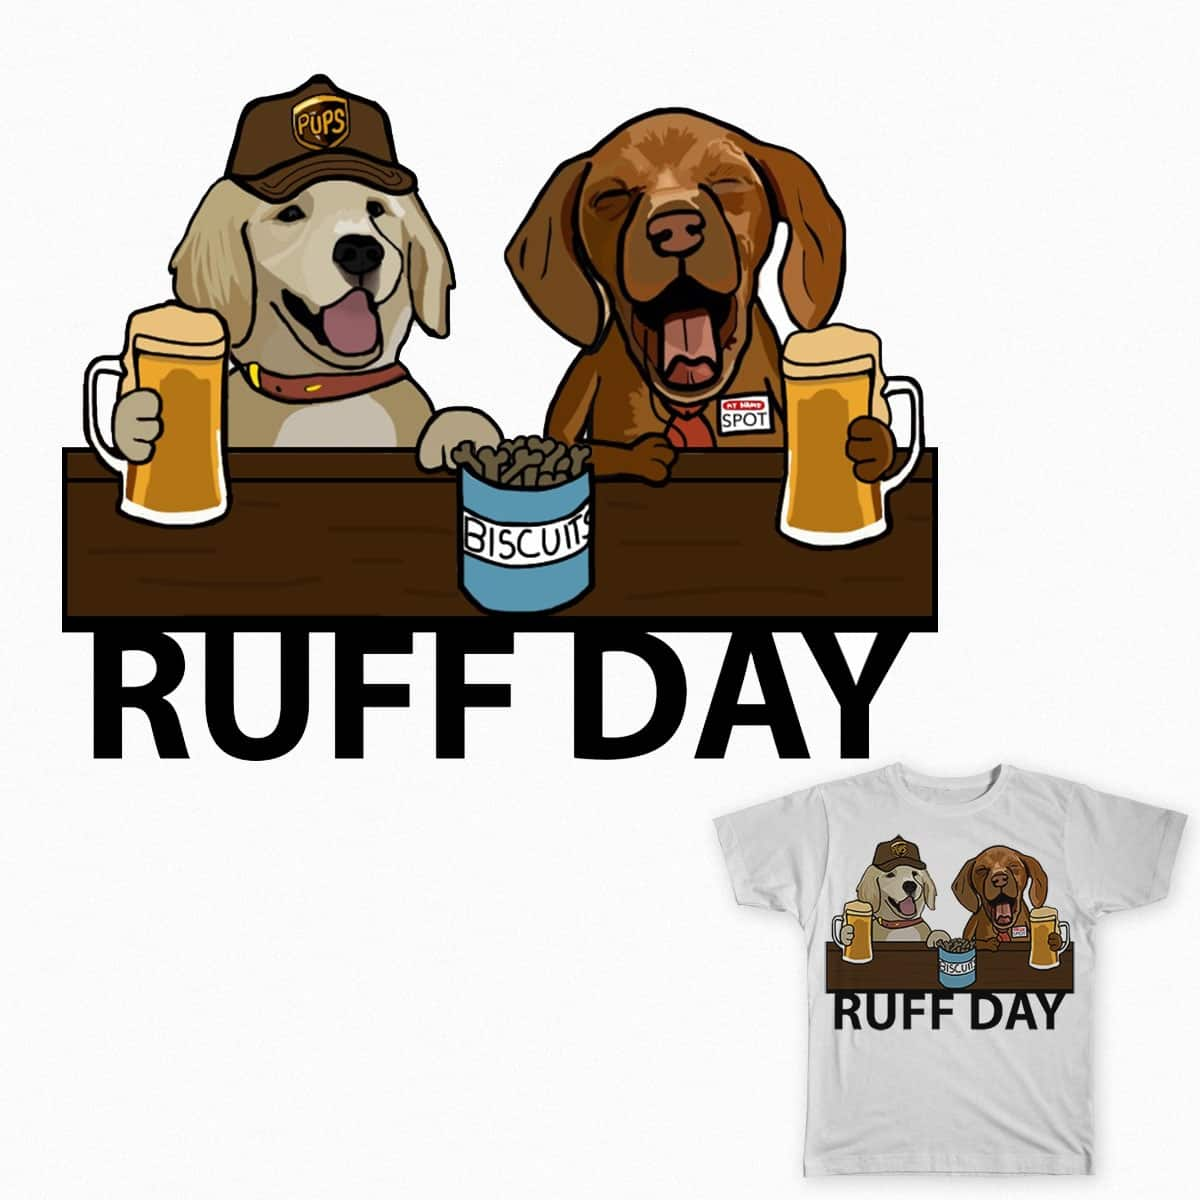 Ruff Day by JoeySvehla on Threadless